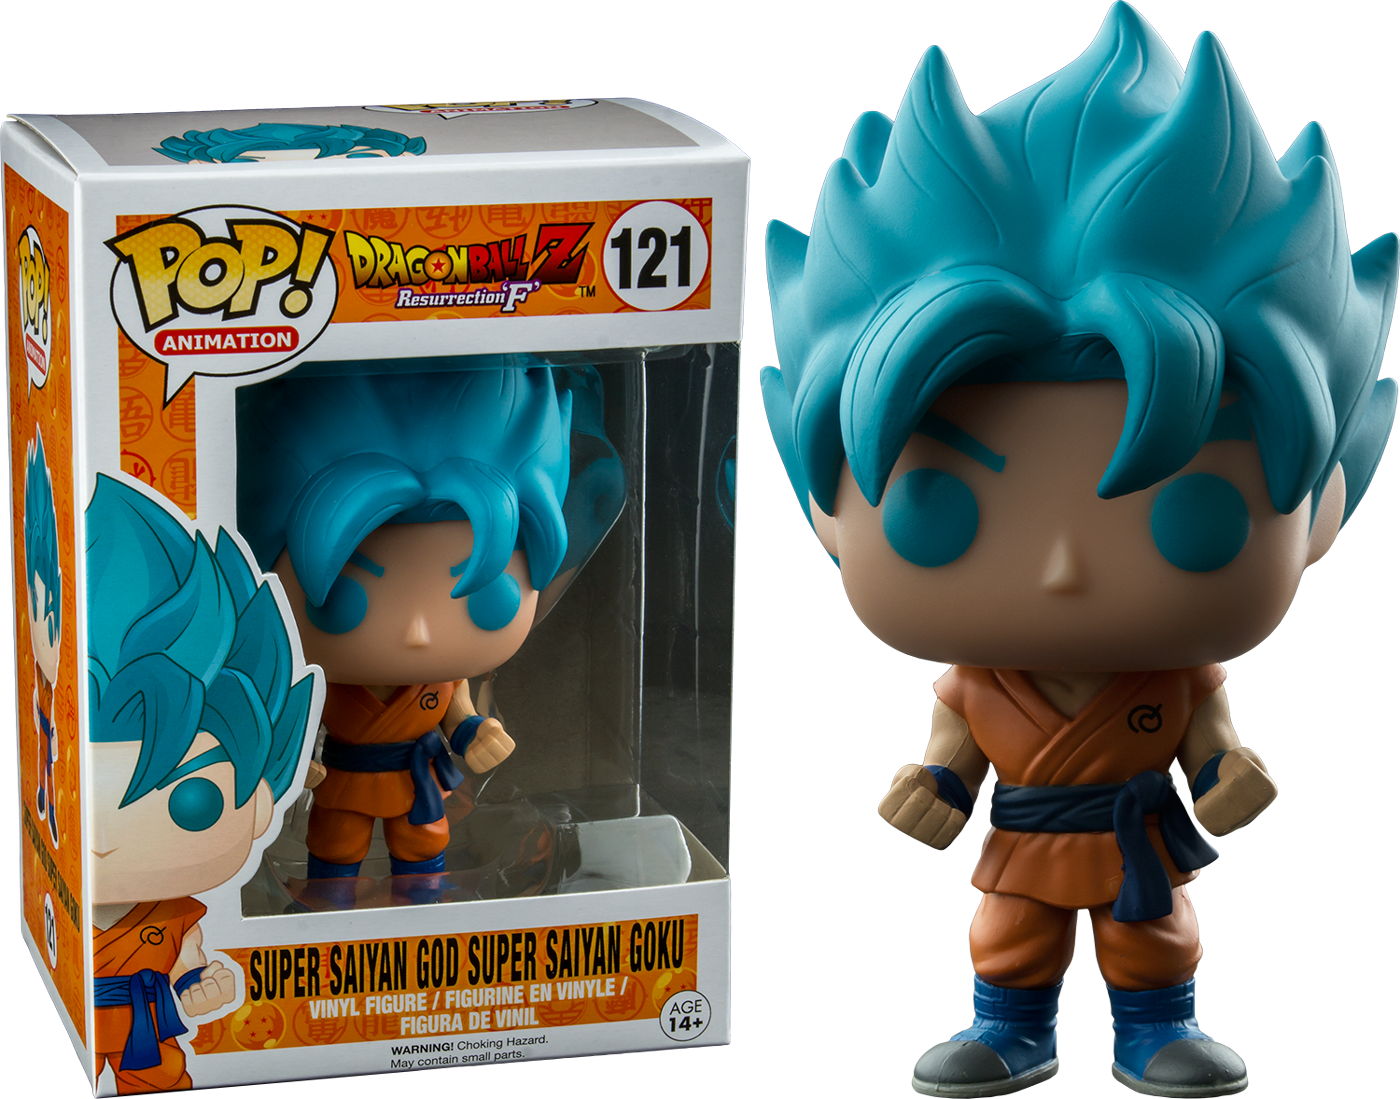 Dragon Ball Z Super Saiyan God Goku Funko Pop Vinyl